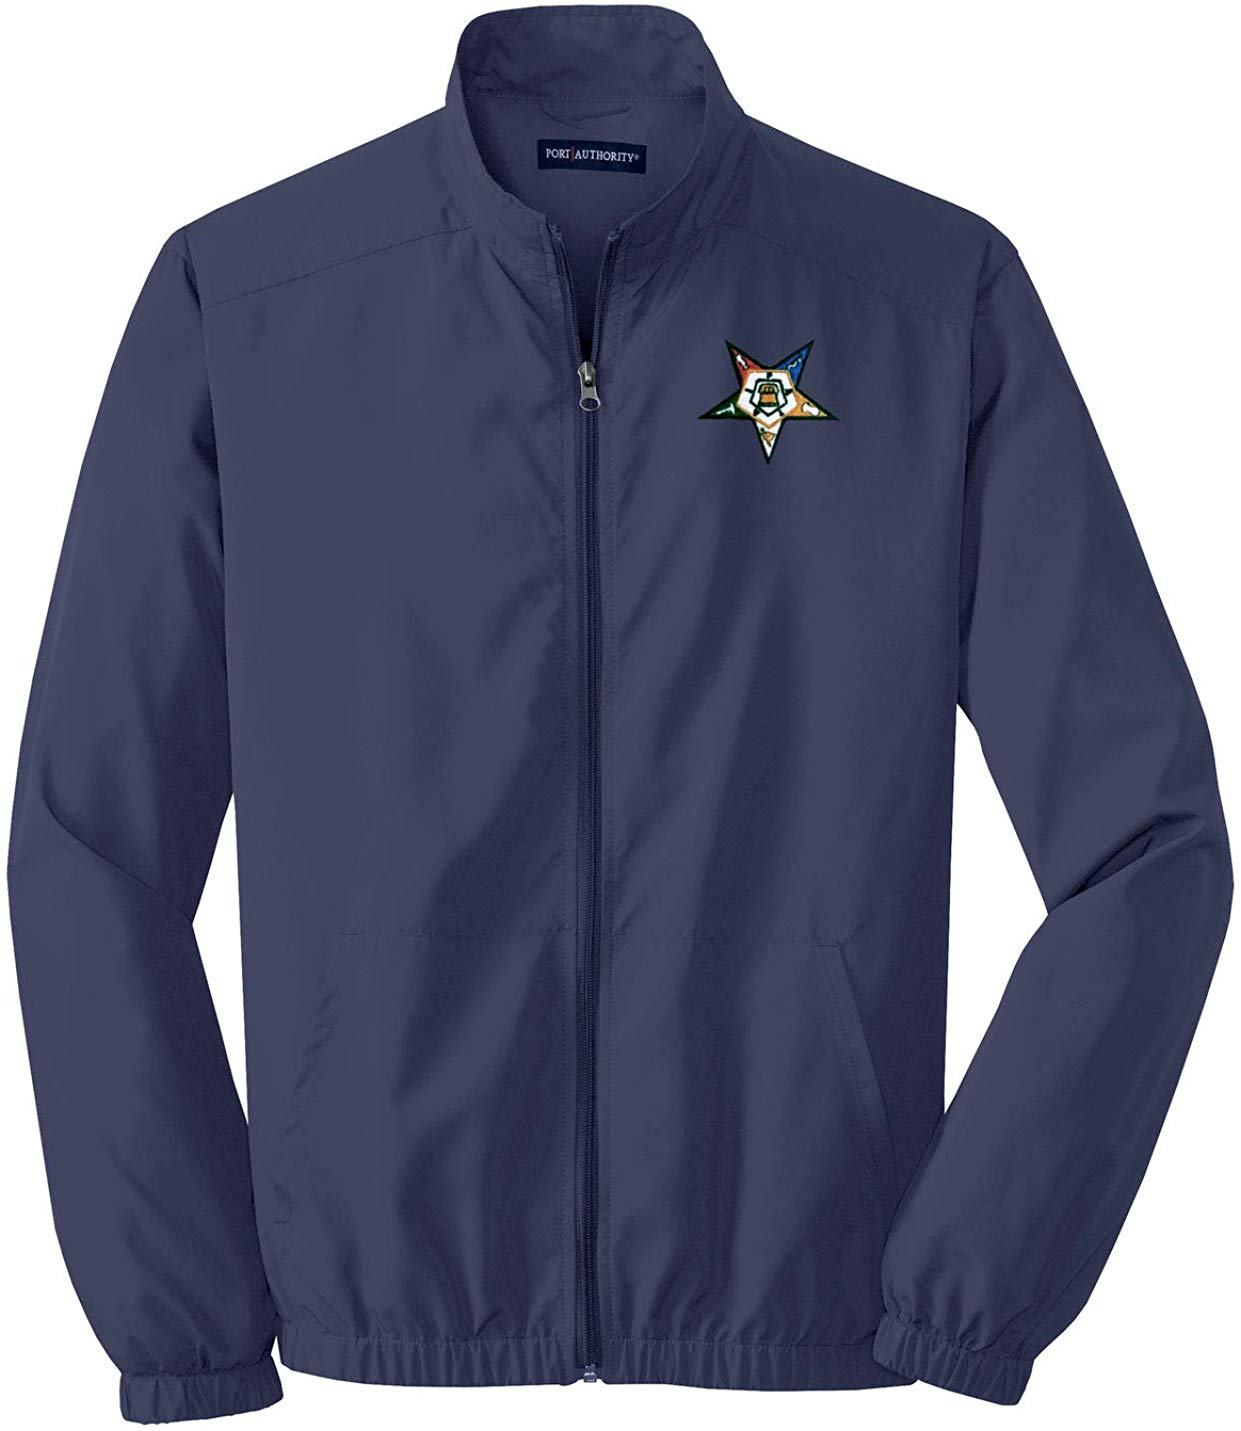 Order of The Eastern Star Windbreaker OES Jacket Navy